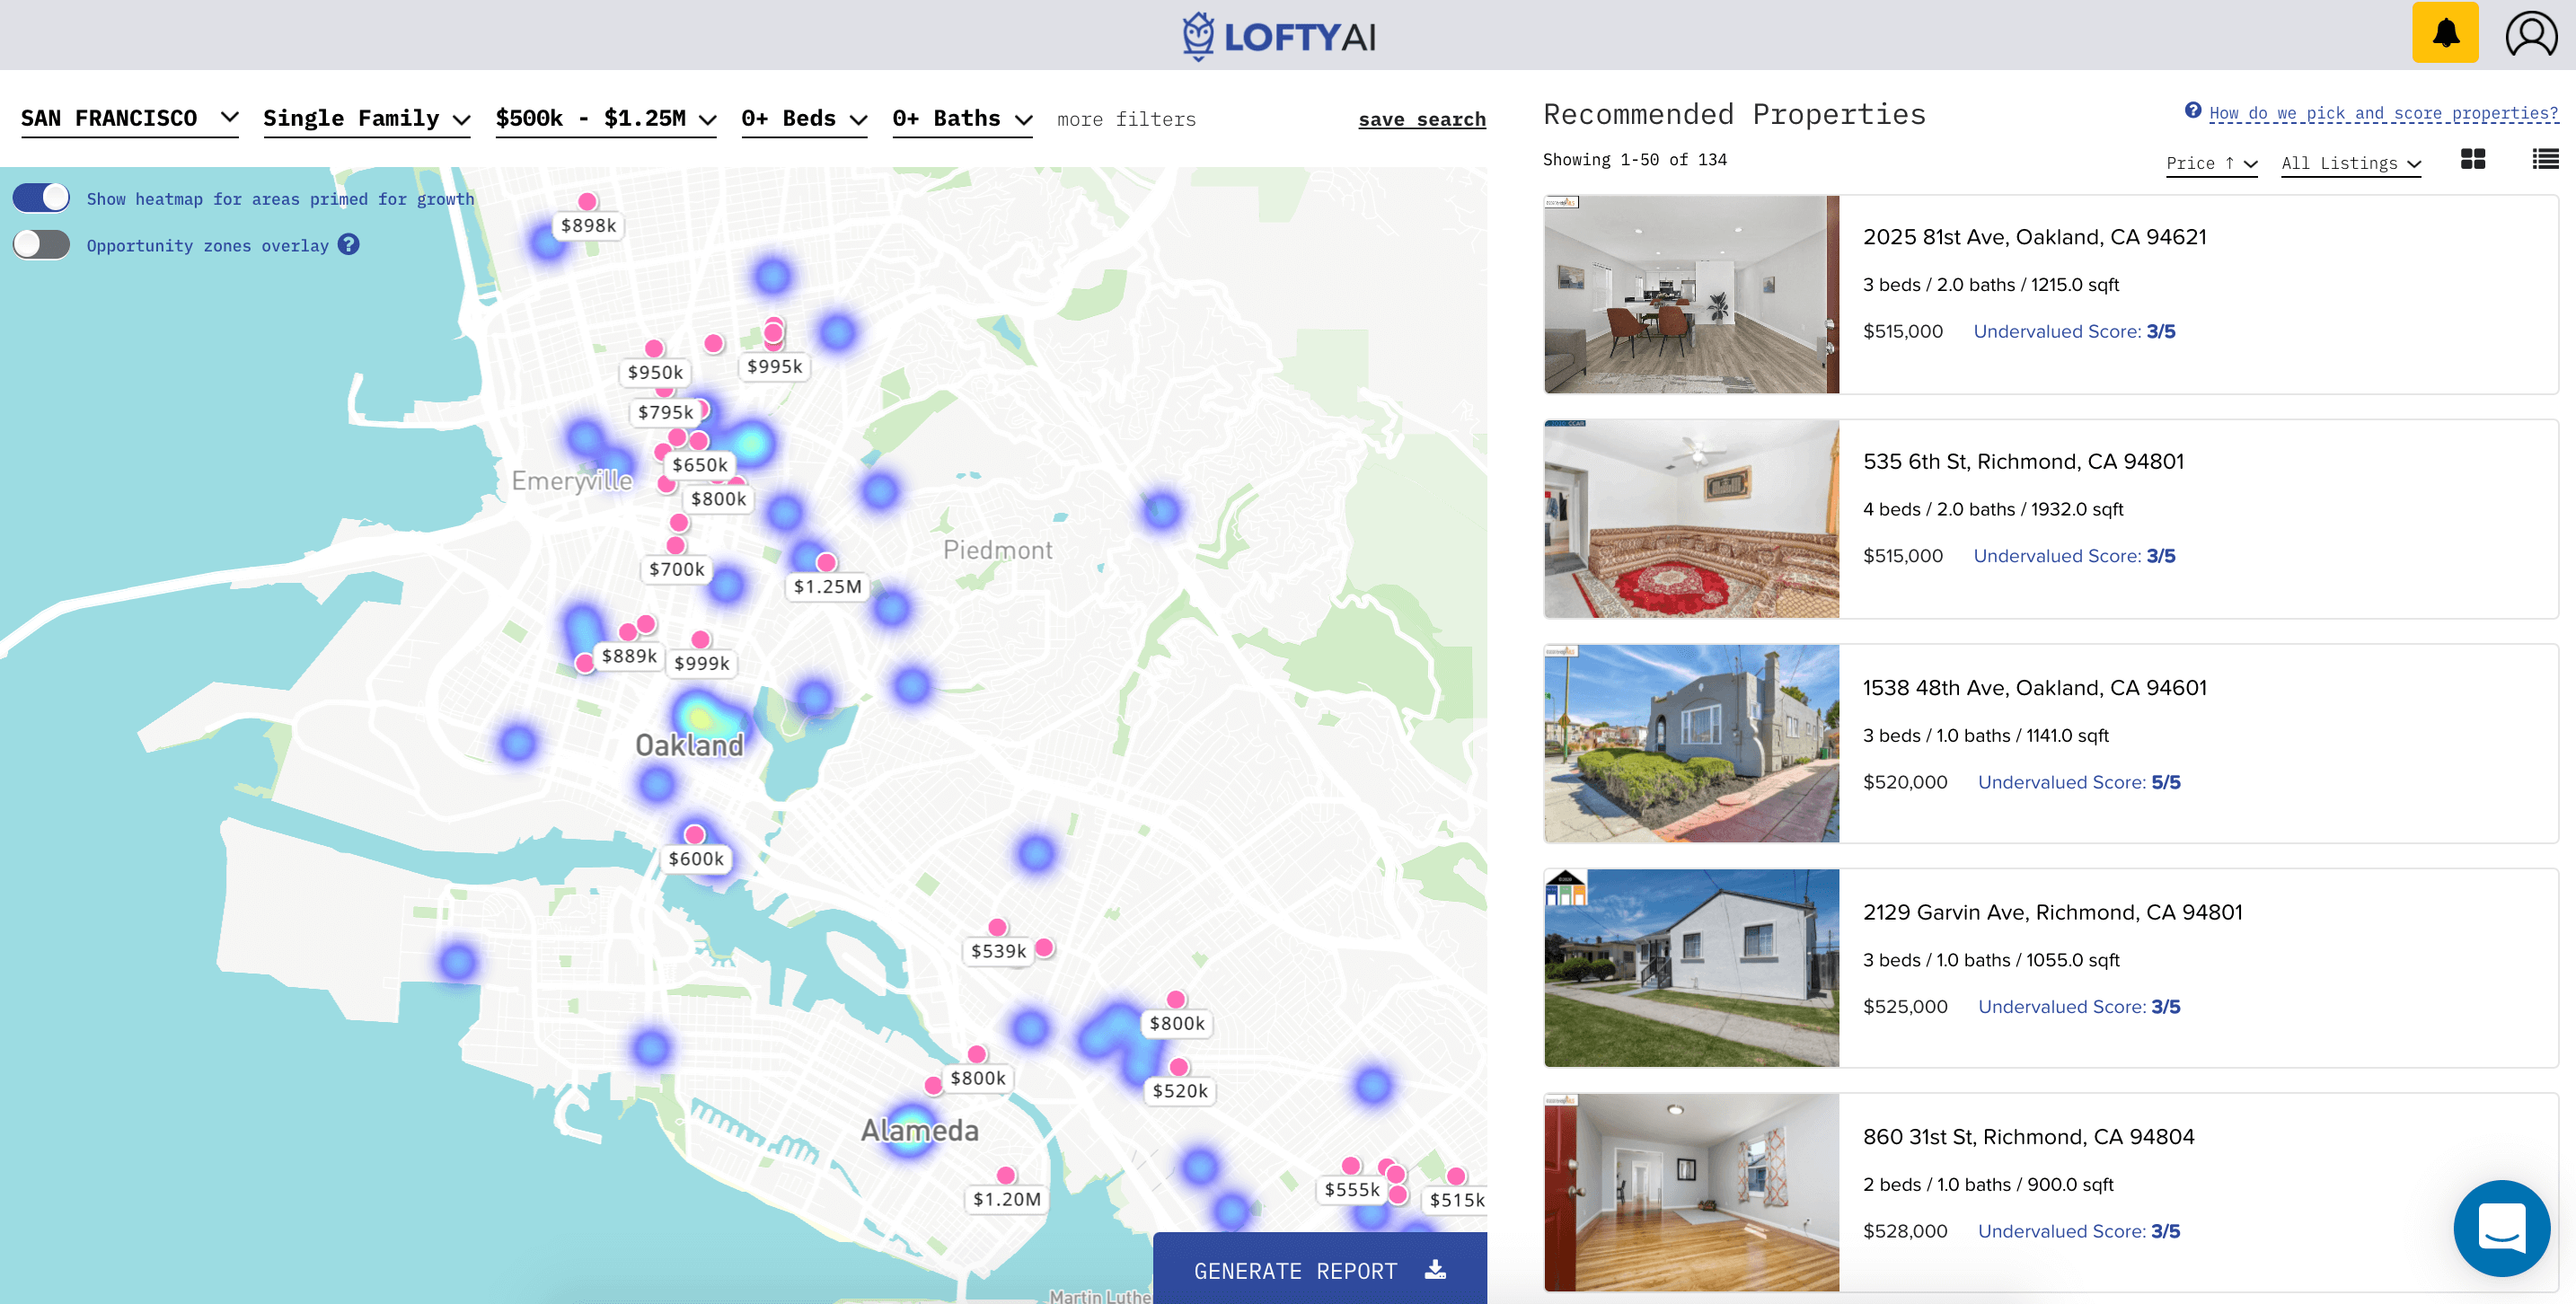 Lofty AI real estate invest app in Oakland, California